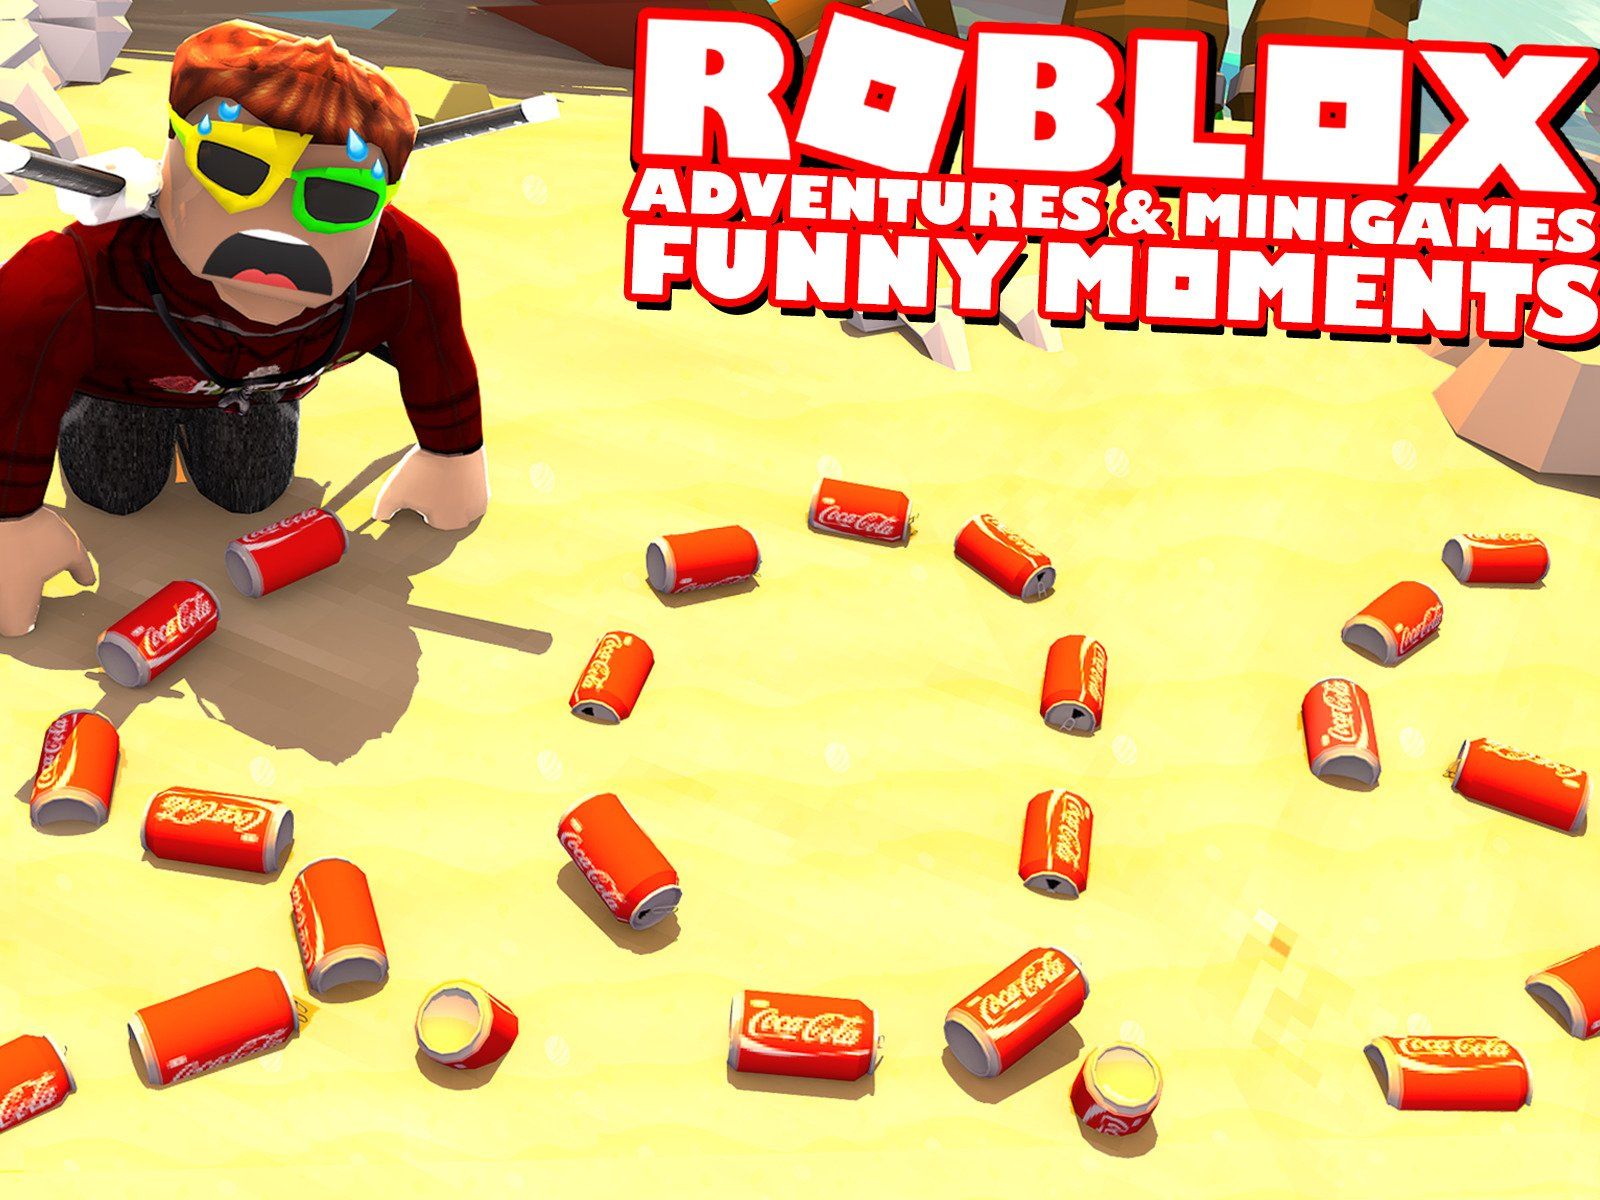 Roblox Minigames Tutorial Watch Clip Roblox Adventures Minigames Funny Moments Prime Video